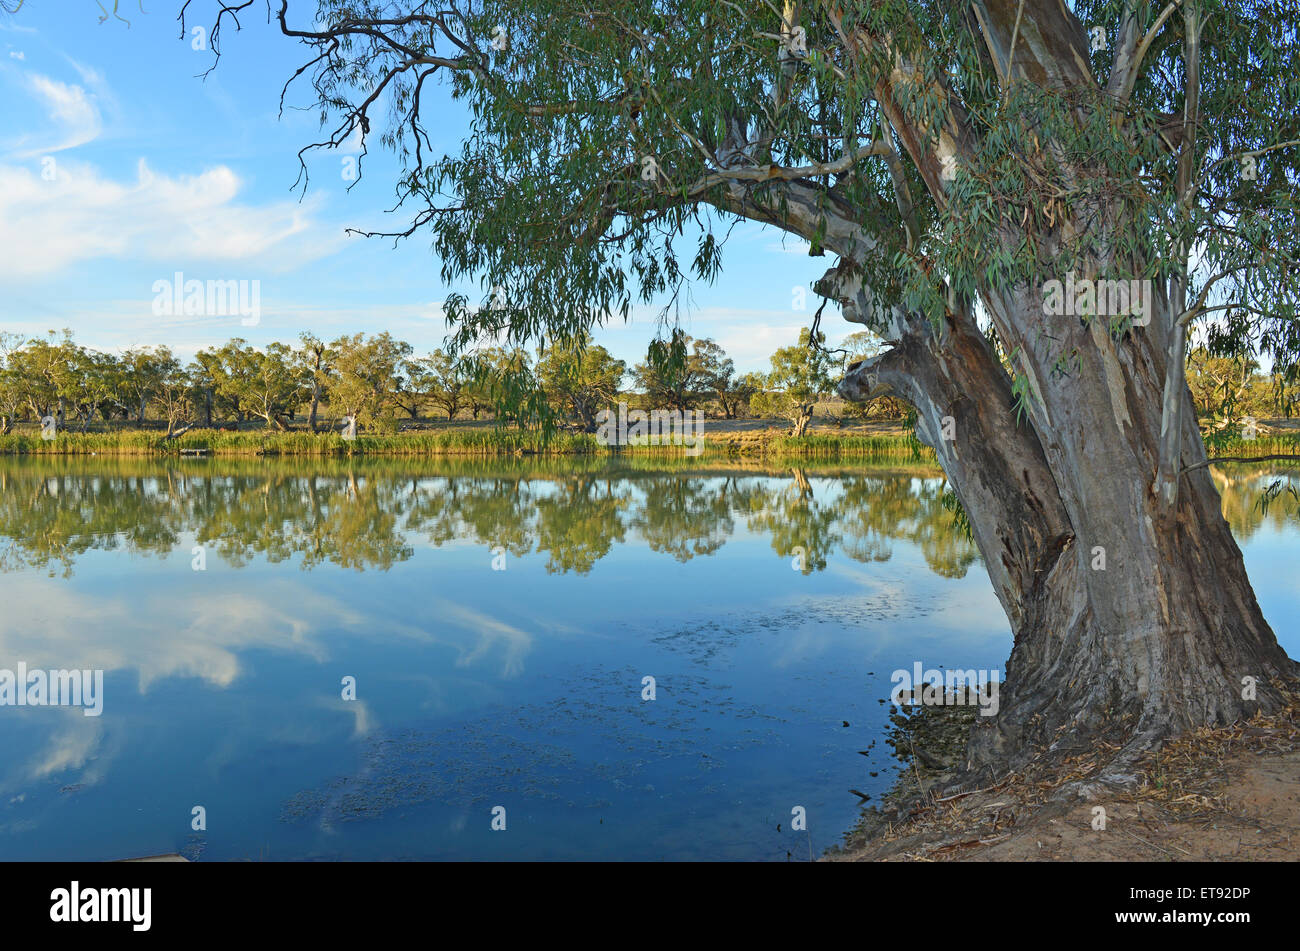 The Murray River near Waikerie - Stock Image